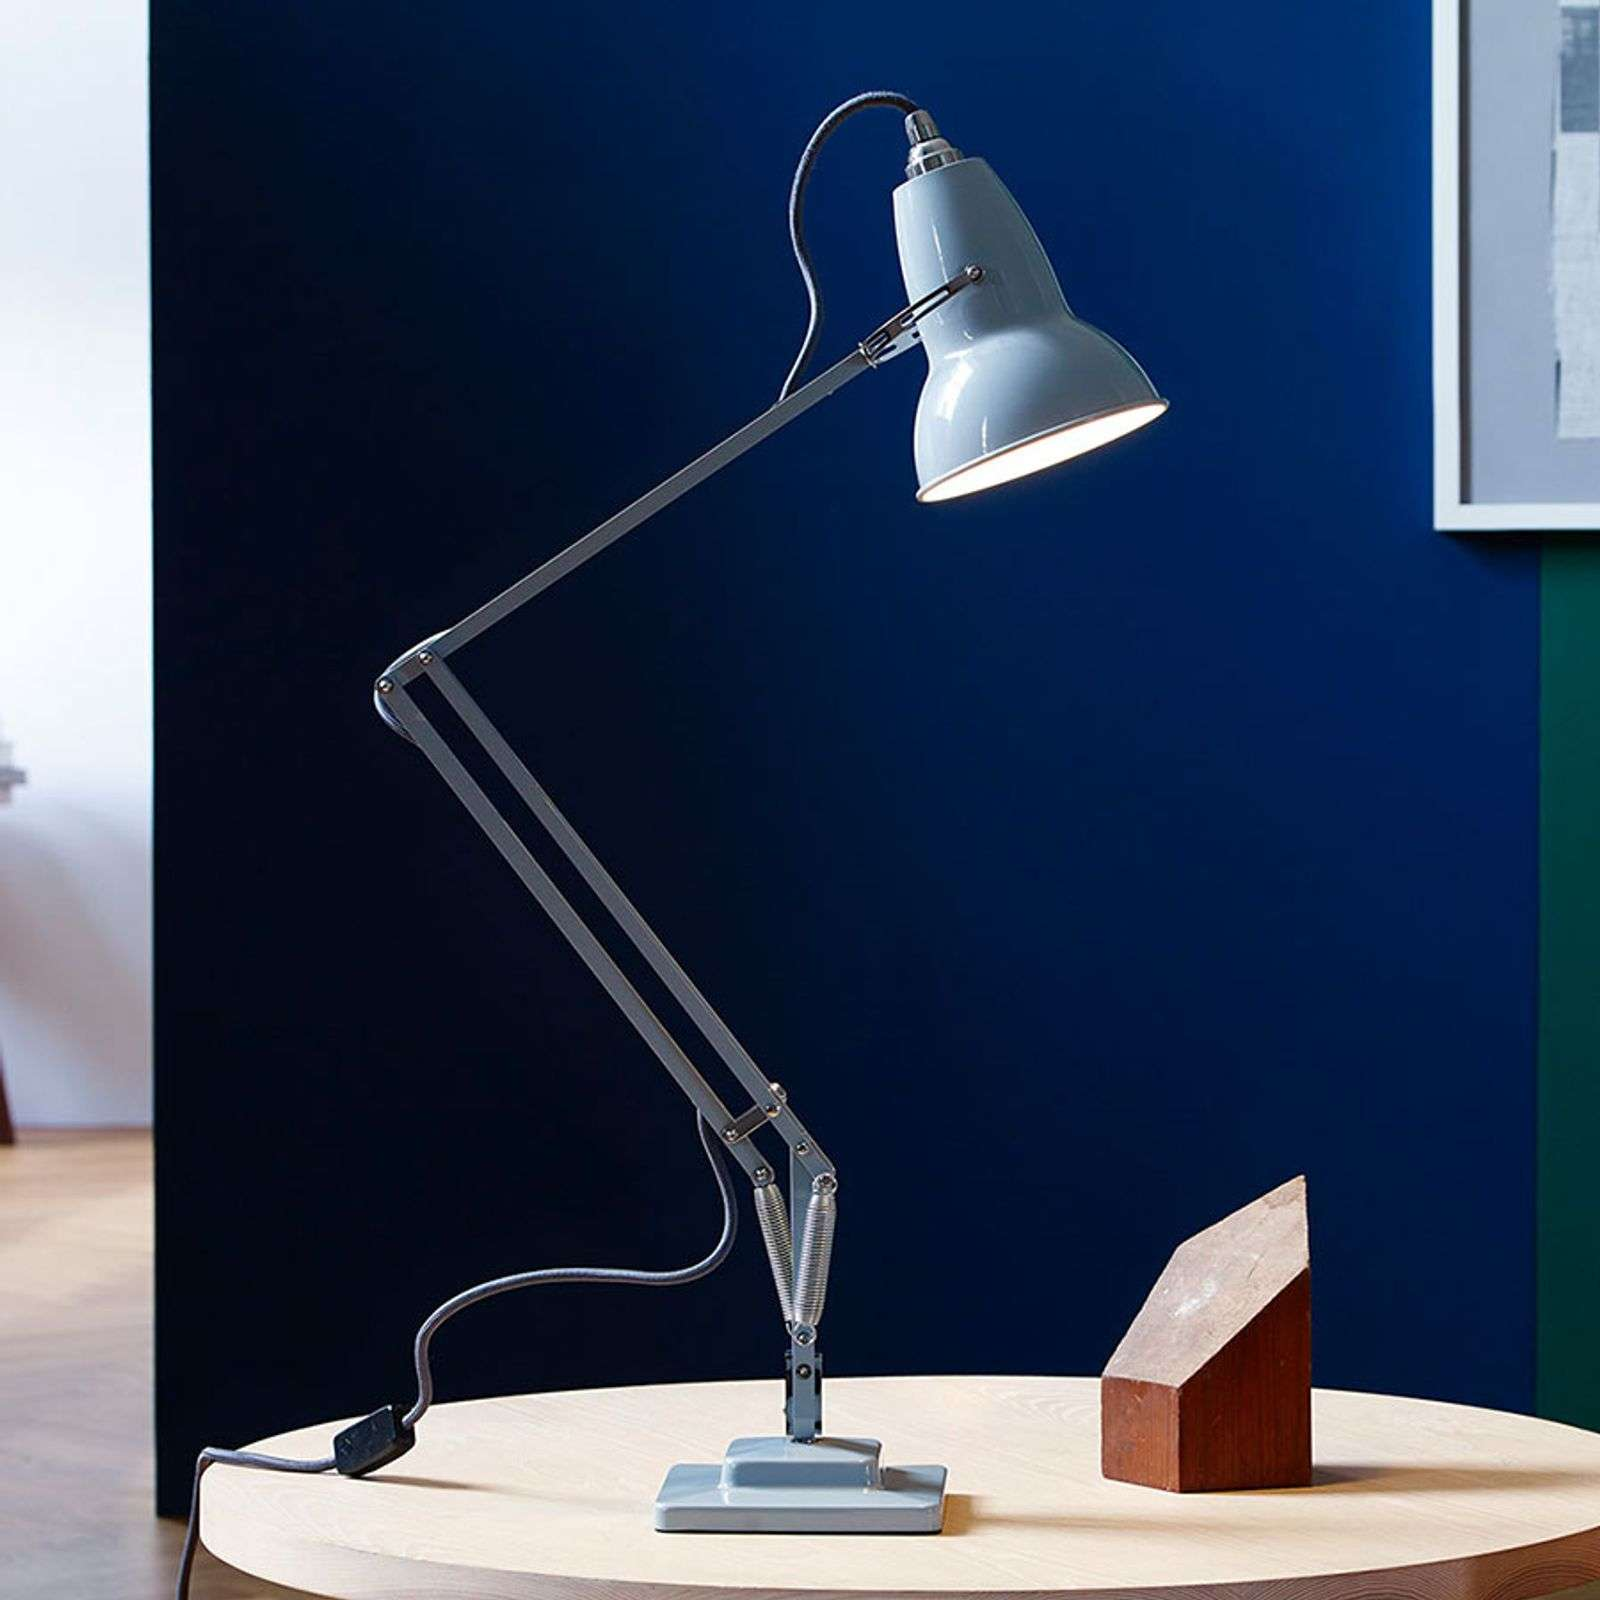 Anglepoise Original 1227 lampe à poser grise